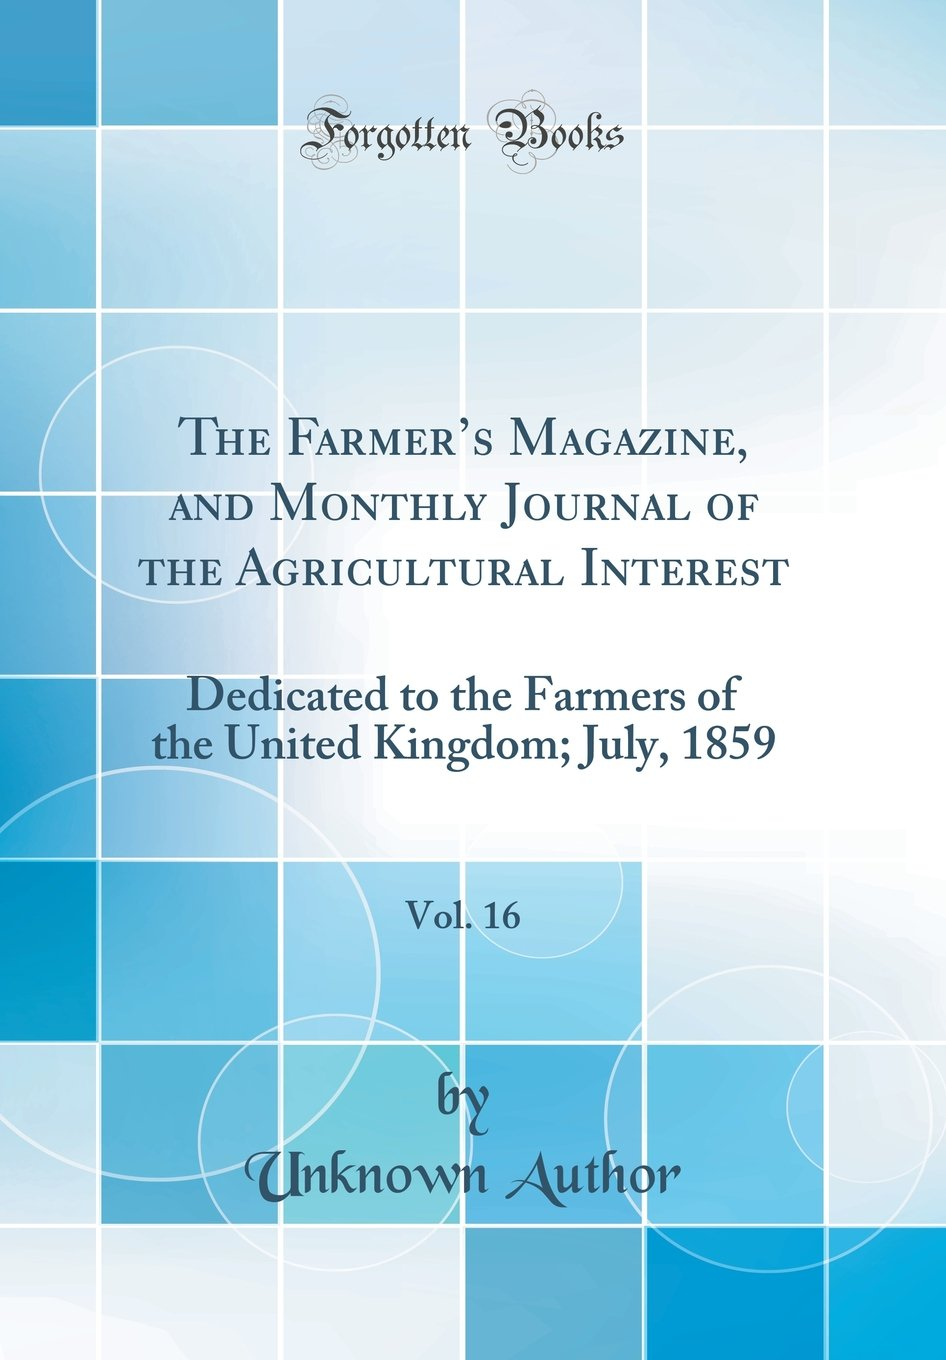 Download The Farmer's Magazine, and Monthly Journal of the Agricultural Interest, Vol. 16: Dedicated to the Farmers of the United Kingdom; July, 1859 (Classic Reprint) pdf epub